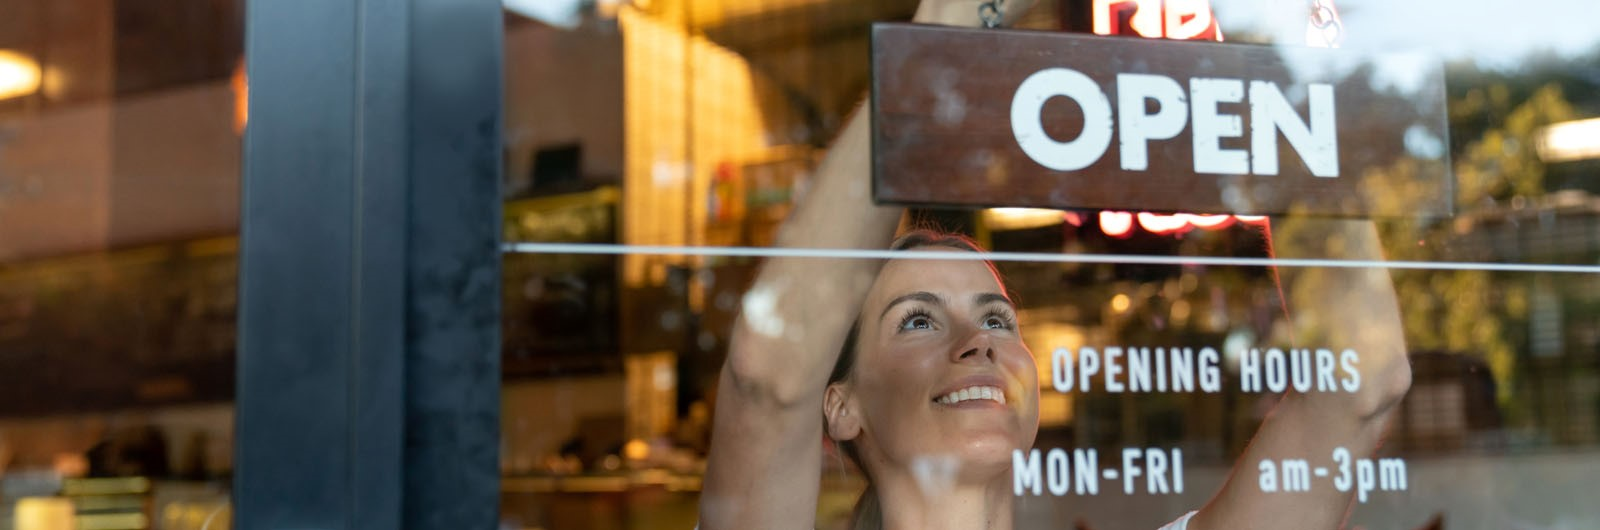 Google My Business Supporting Soon-To-Open Businesses